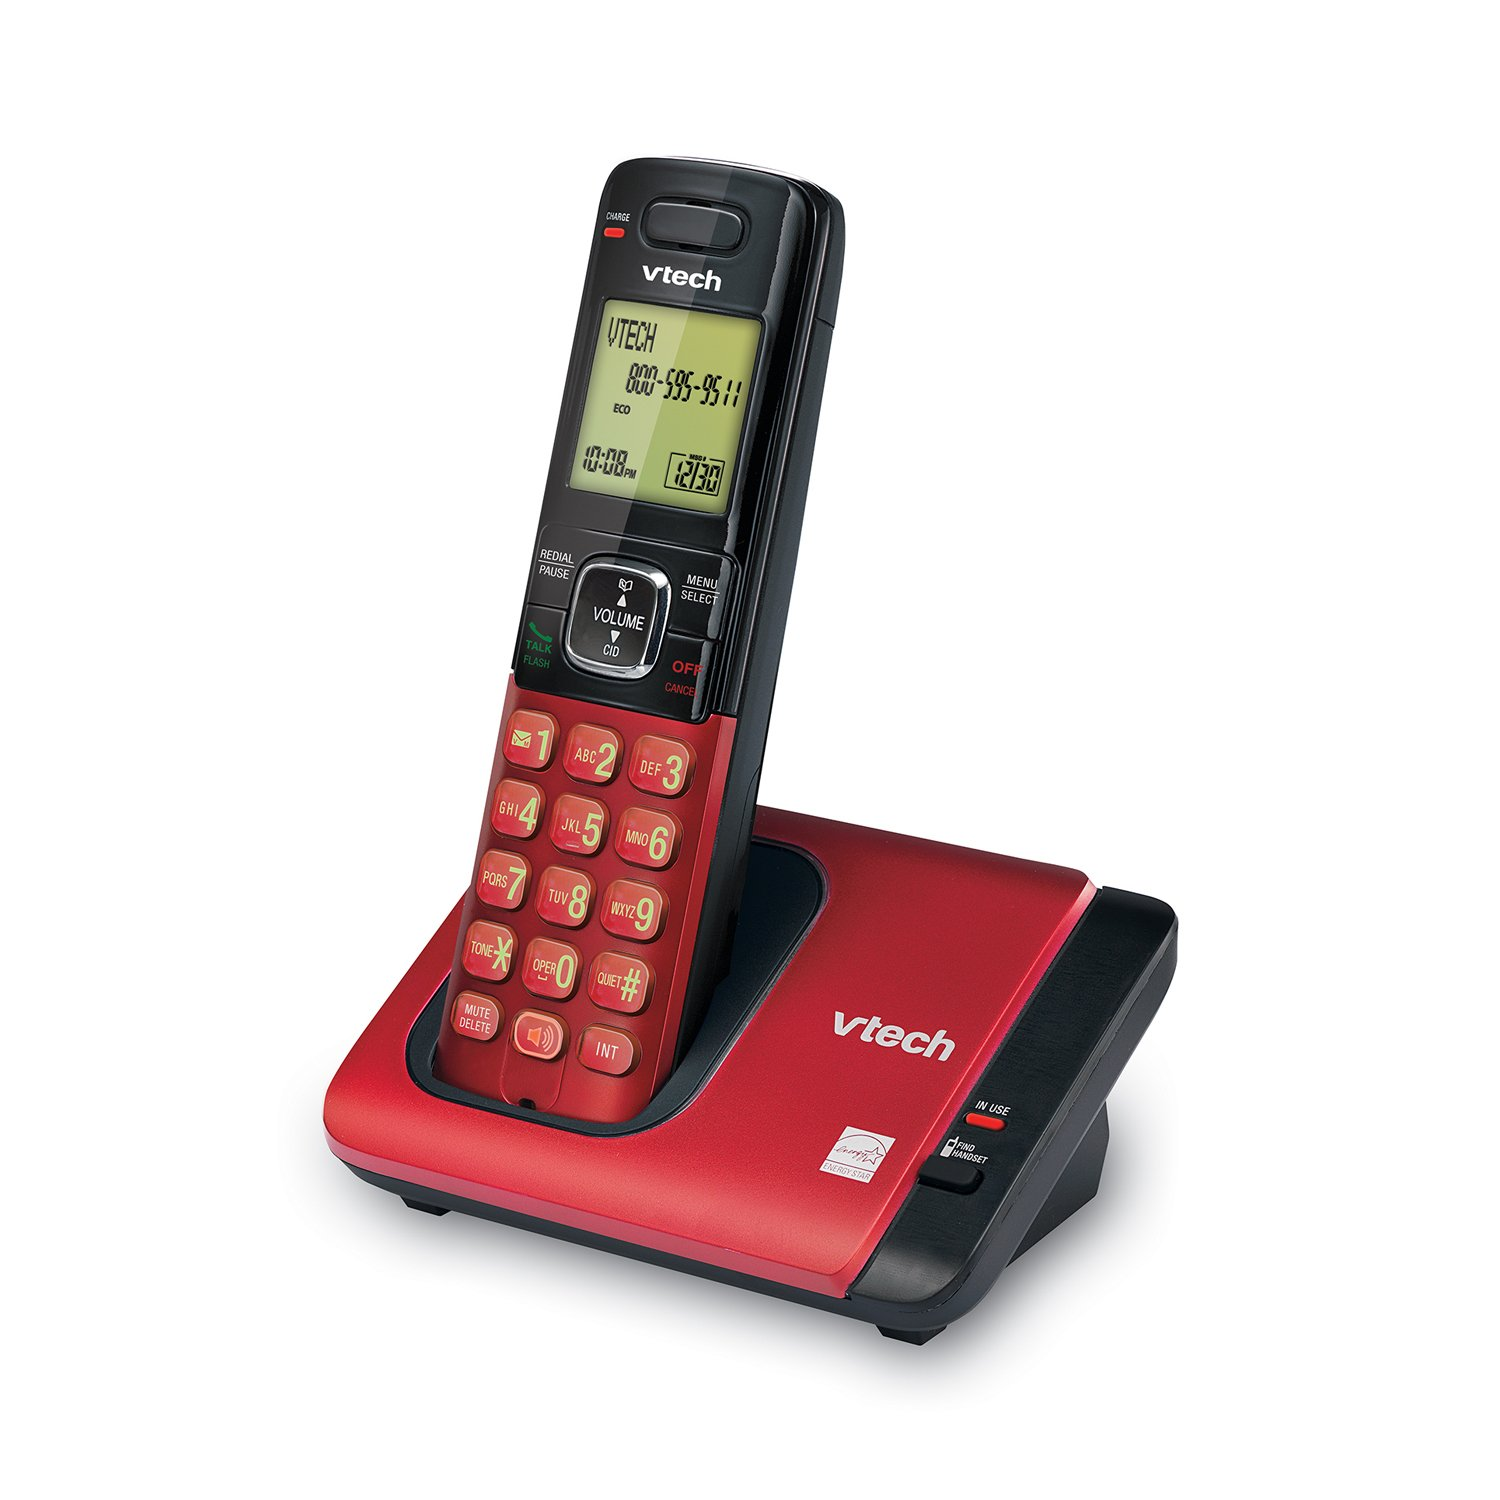 Amazon.com : VTech CS6719-16 DECT 6.0 Phone with Caller ID/Call Waiting, 1 Cordless Handset, Red : Caller Id Displays